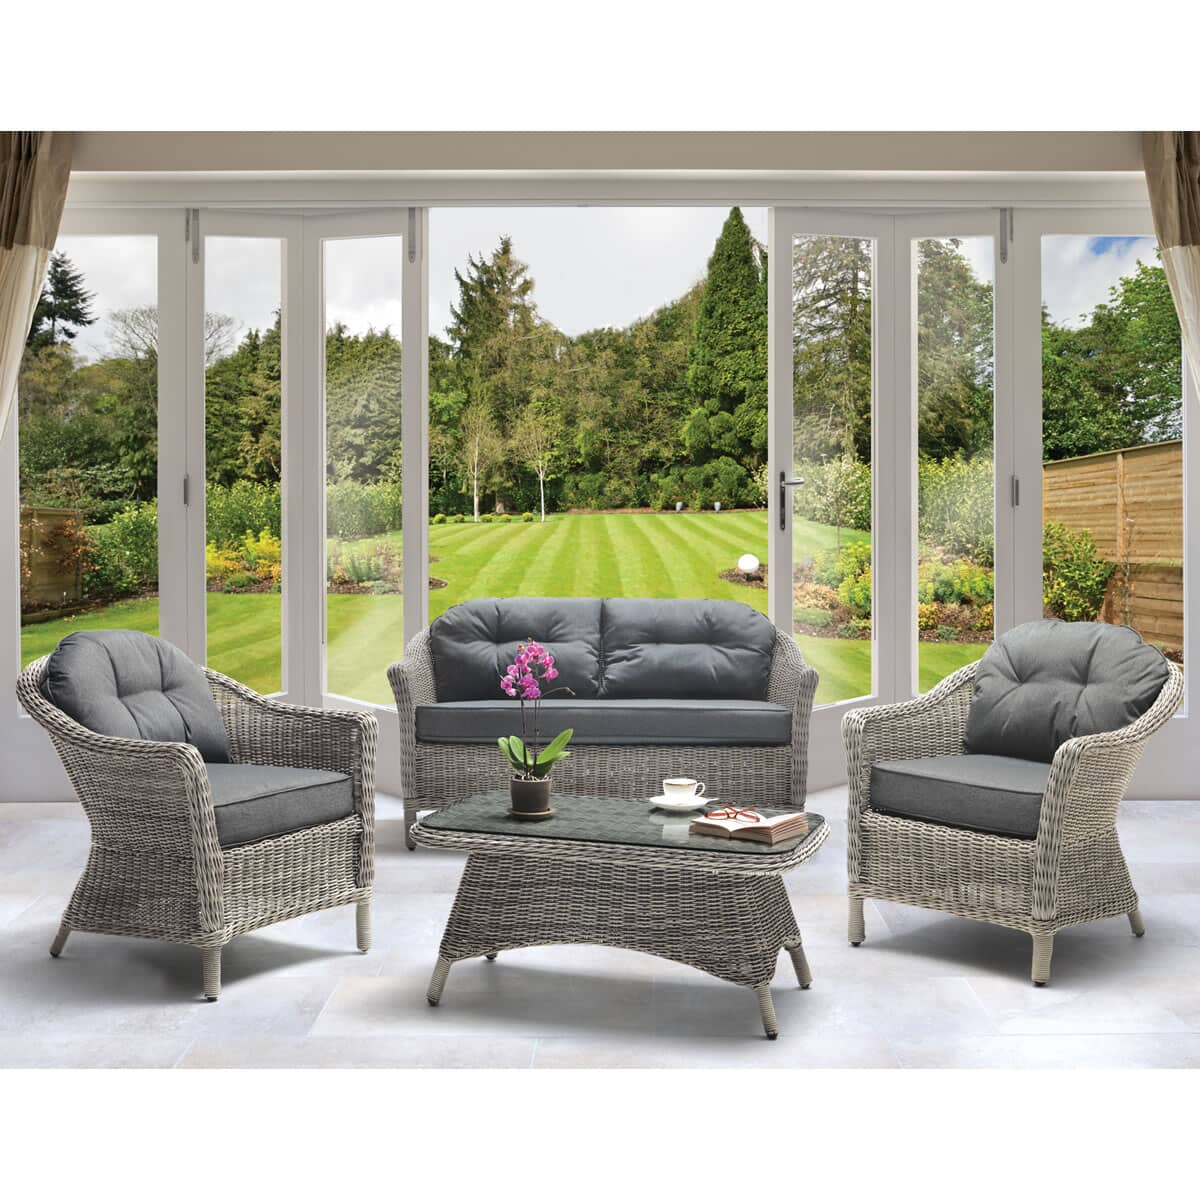 kettler loire lounge set 03053305410c garden furniture world. Black Bedroom Furniture Sets. Home Design Ideas